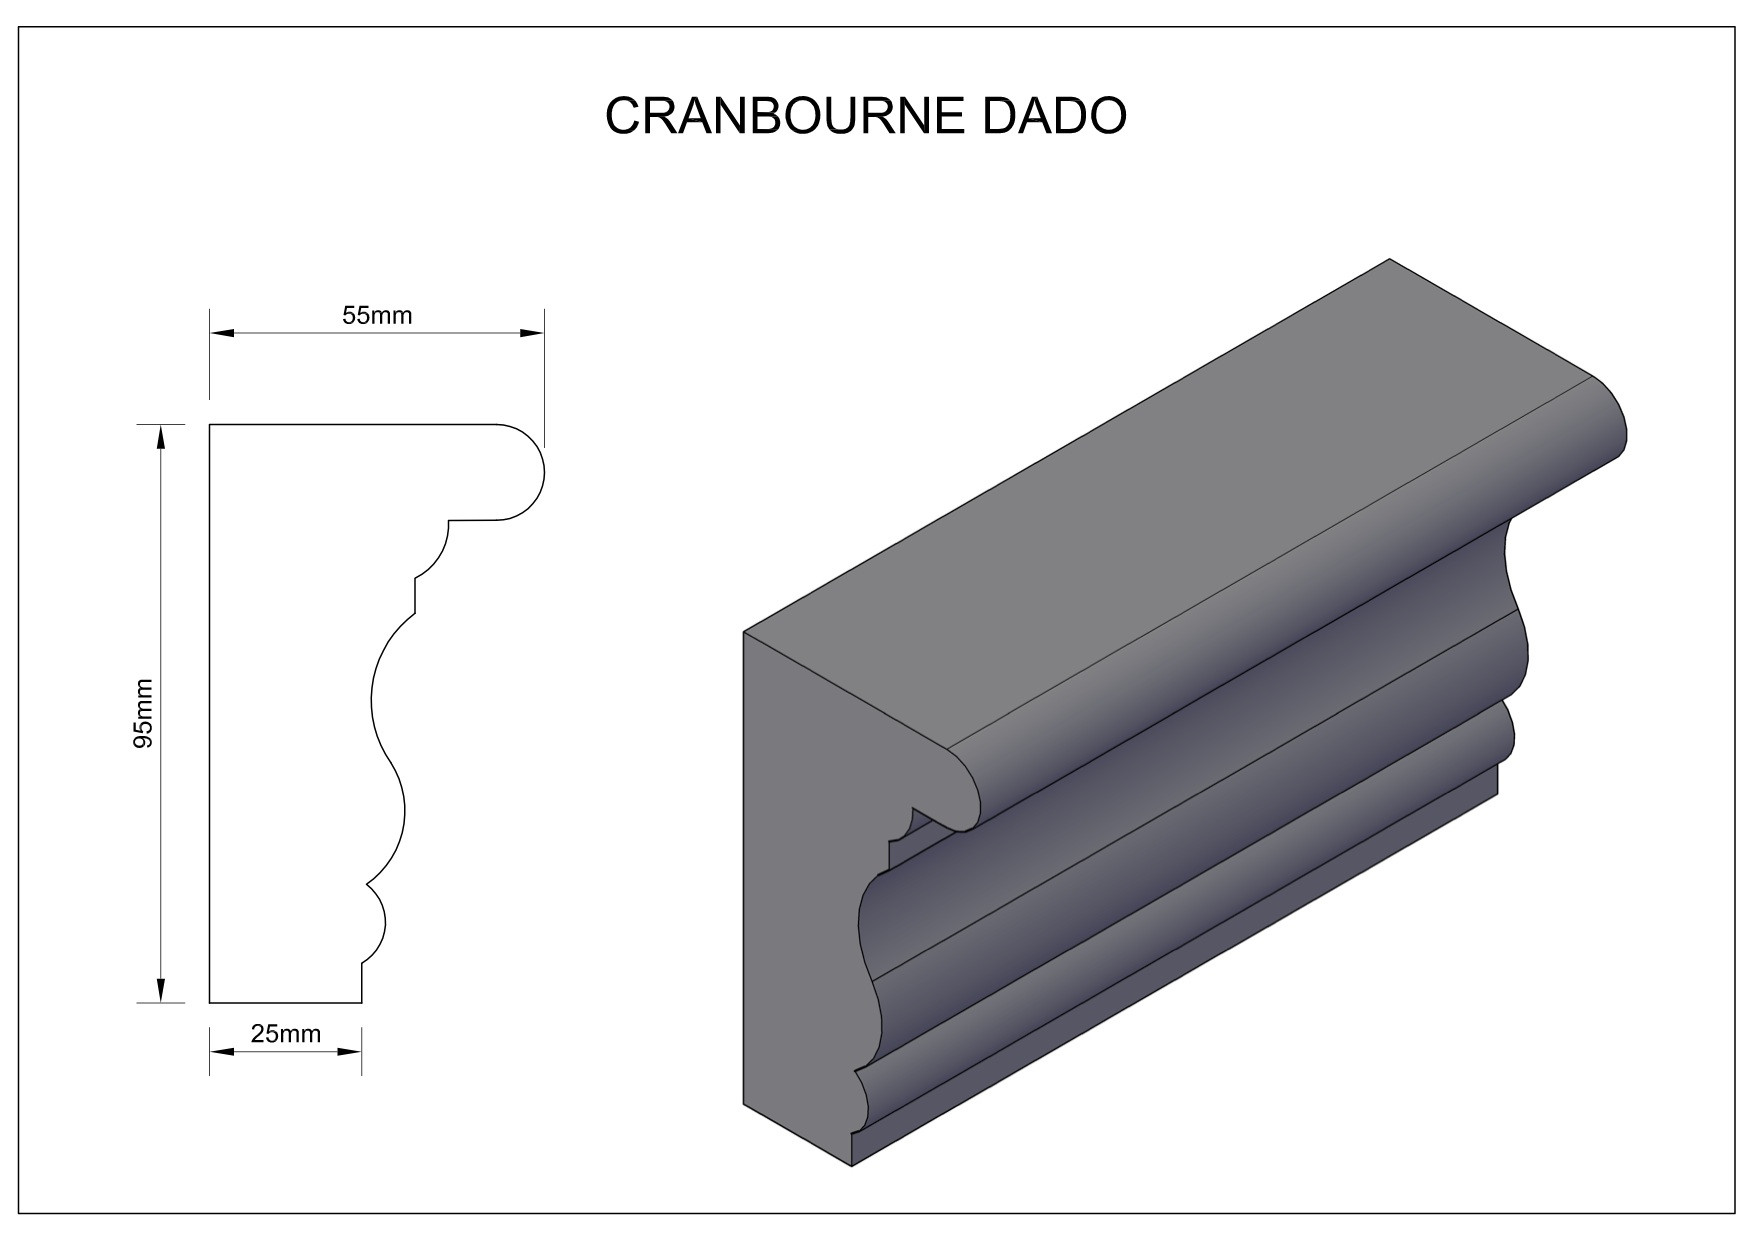 Cranbourne-Dado copy